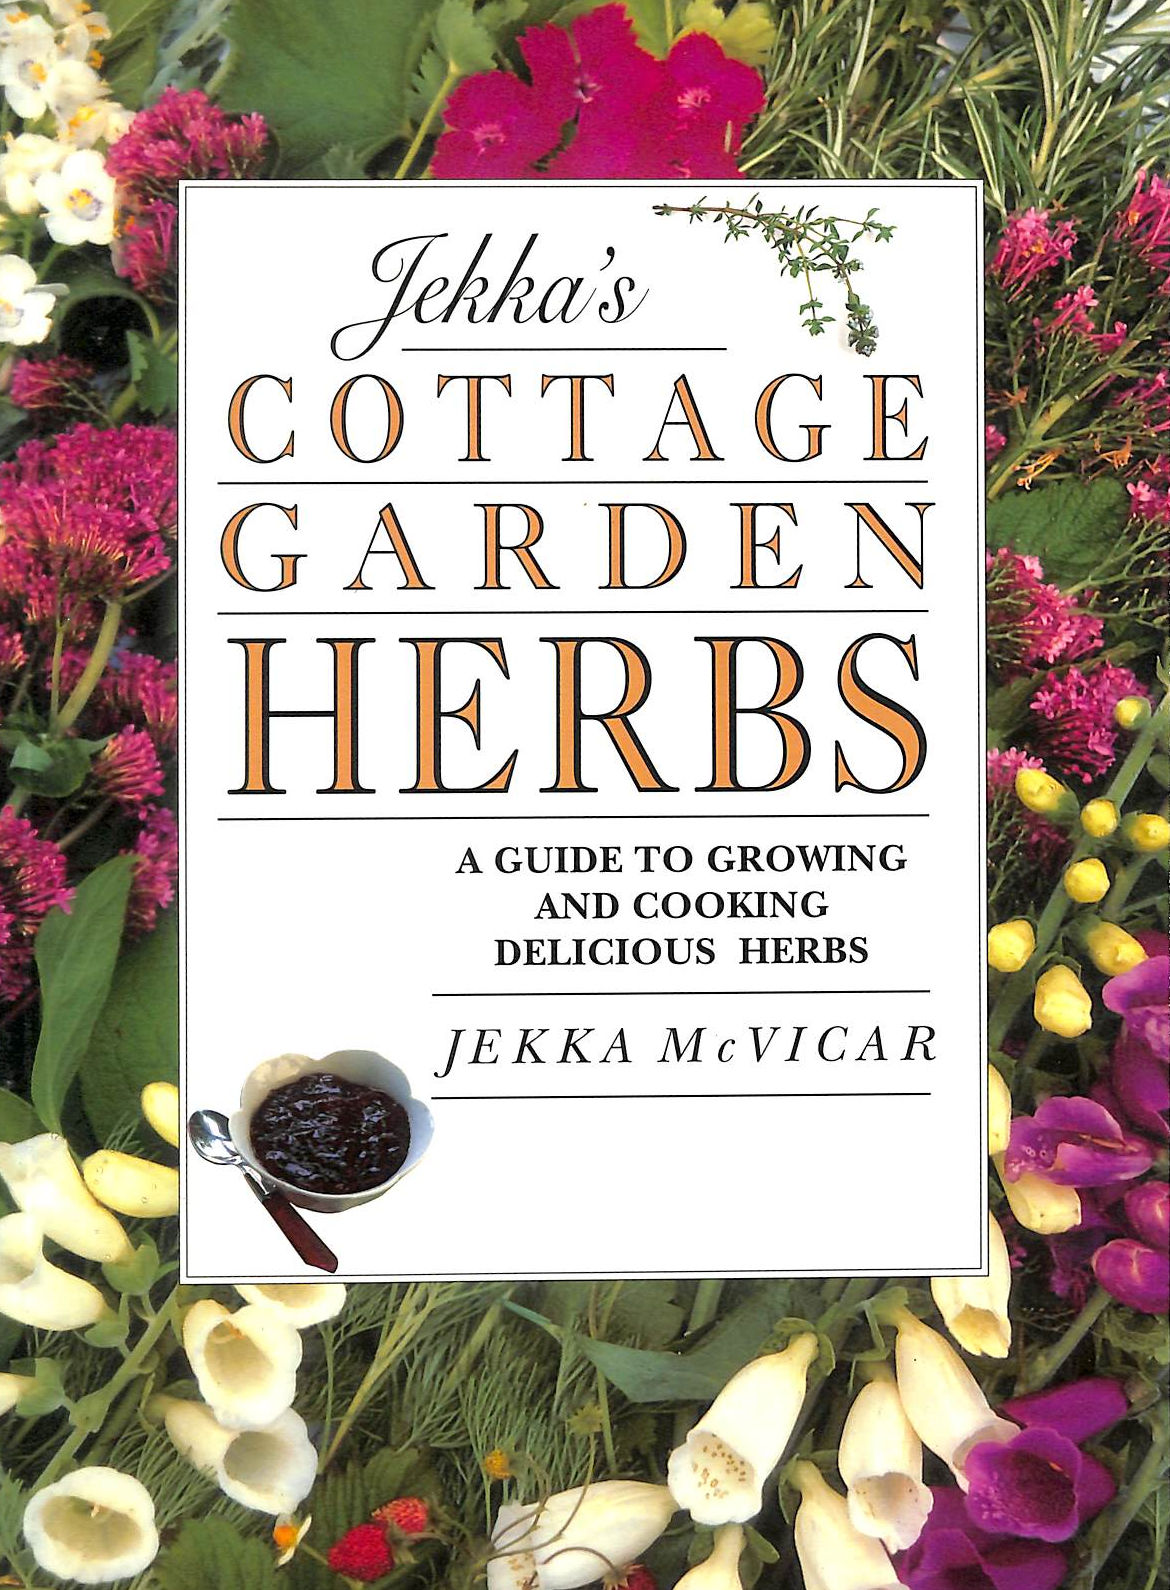 Image for Jekka's Cottage Garden Herbs: A Guide to Growing and Cooking Delicious Herbs